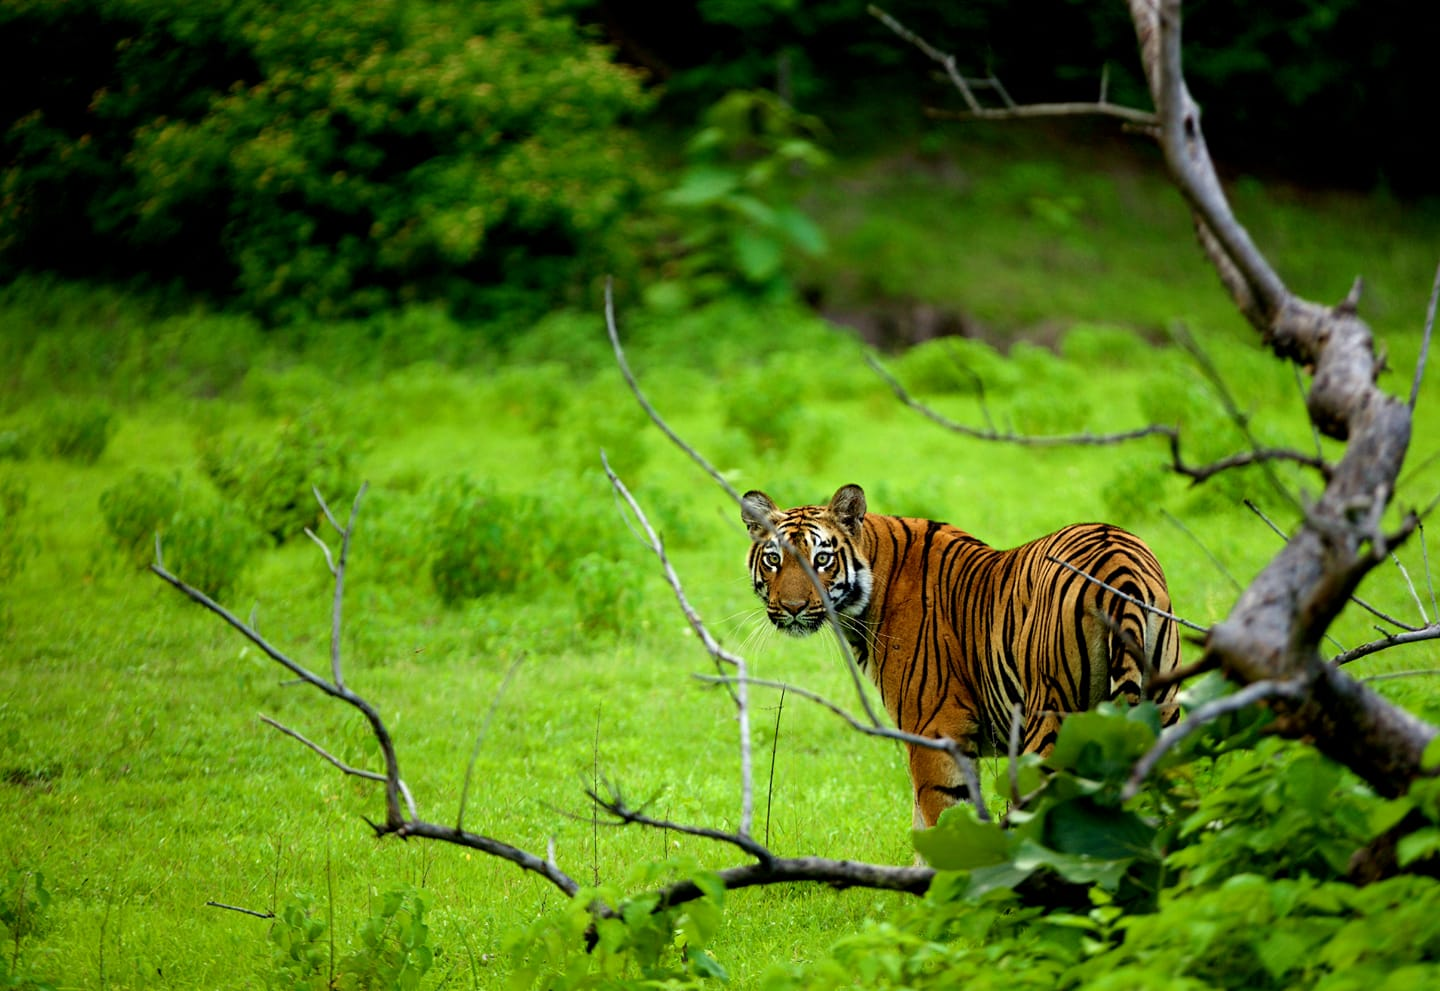 Monsoon Queen- Tigress at Tipeshwar Wild Life Sanctuary